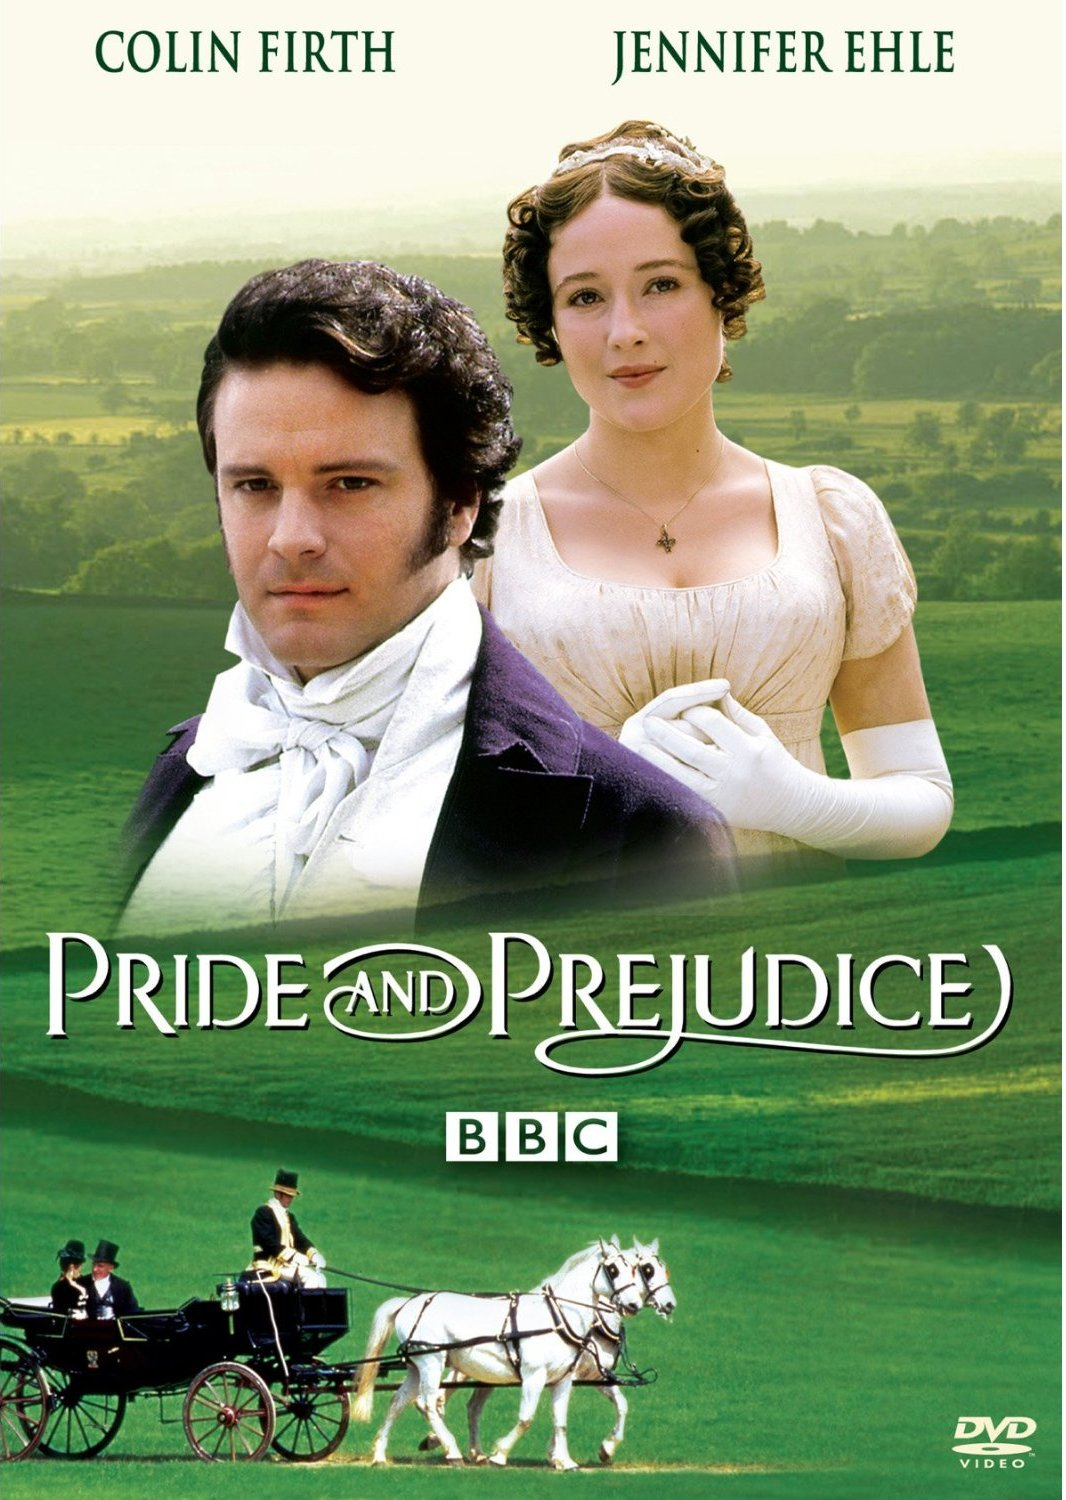 The Jane Austen Film C...